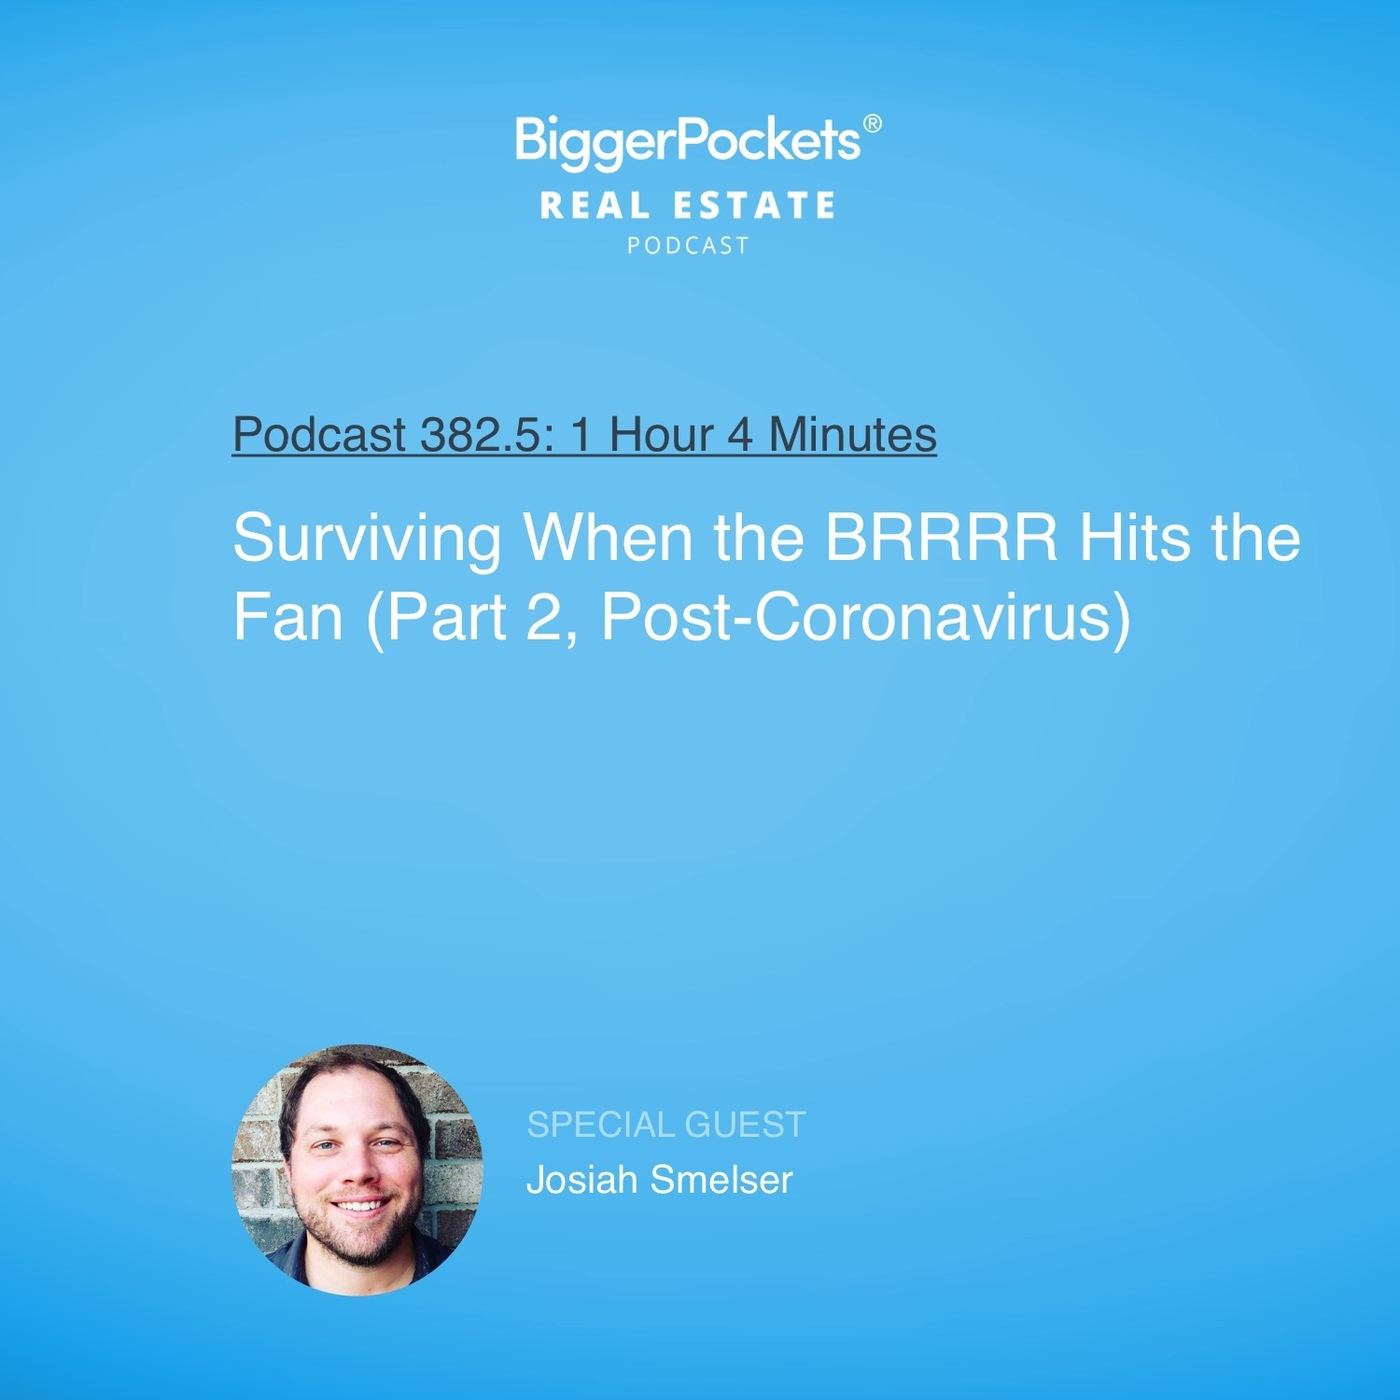 Surviving When the BRRRR Hits the Fan with Josiah Smelser (Part 2, Post-Coronavirus)